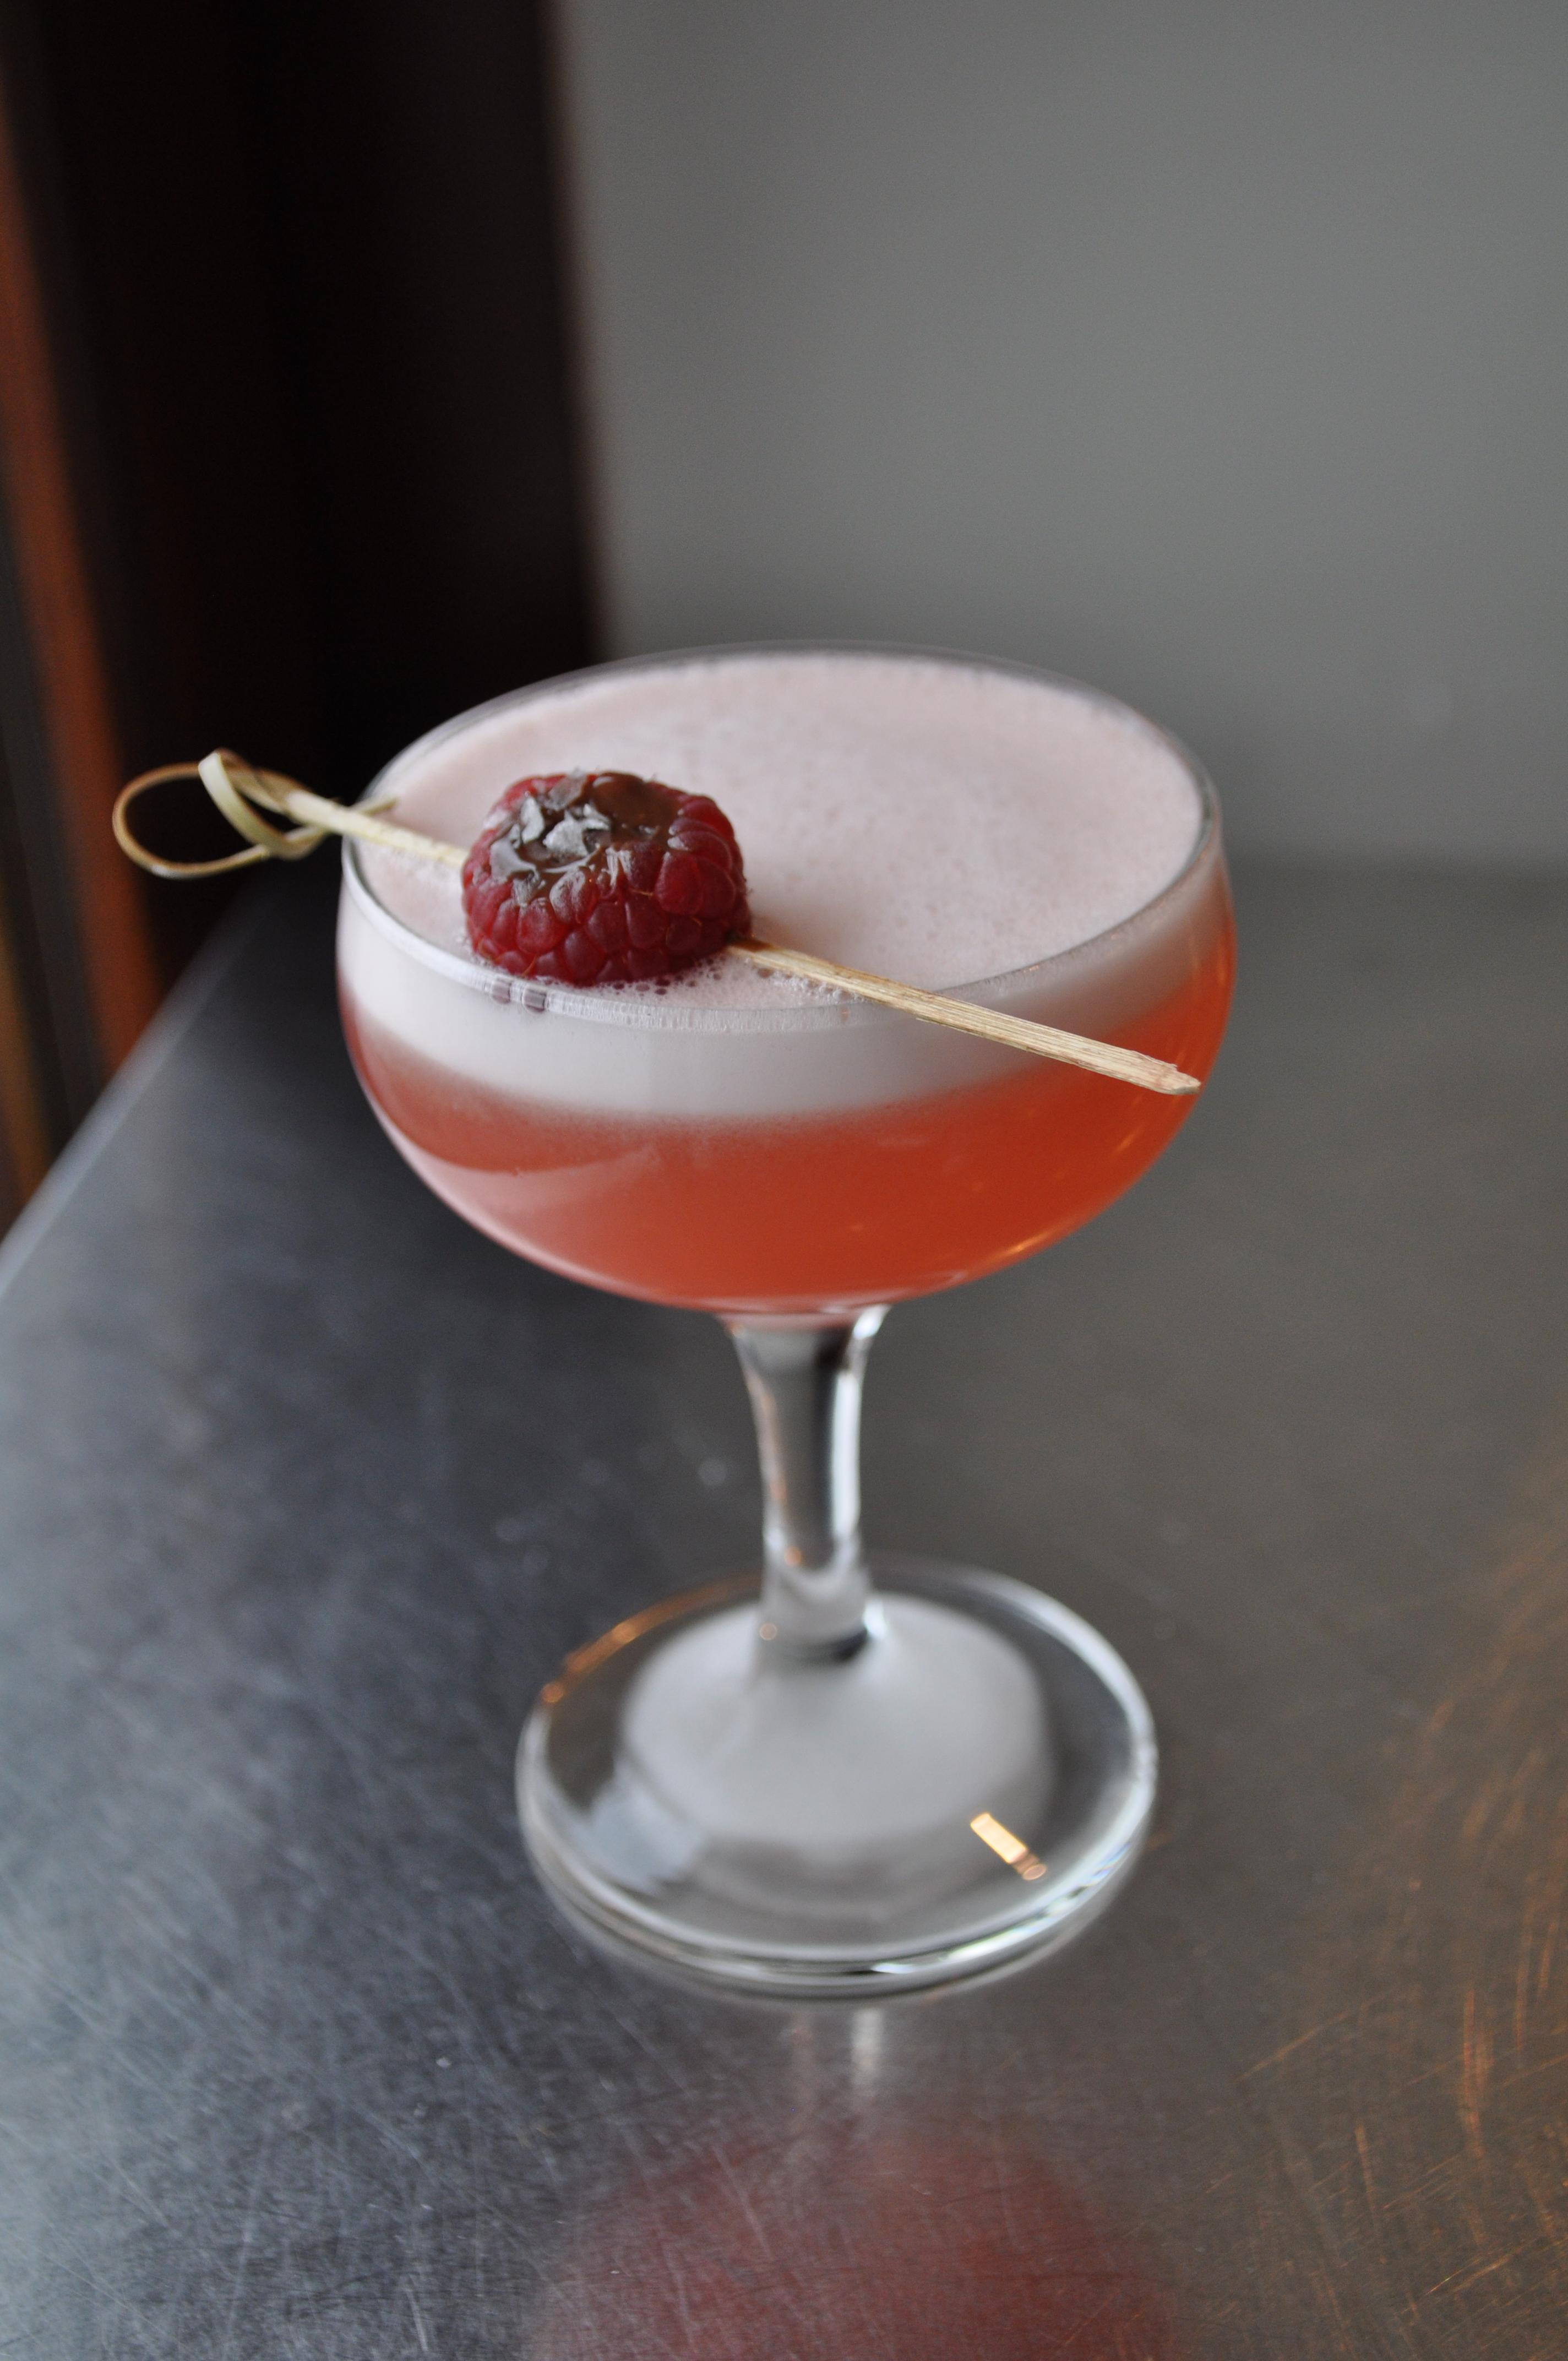 Wicked Games -- Roasted Shishito-Infused Mezcal, Raspberry, Lemon, Egg White, Bitters. On the menu at The Royal. (Image: Courtesy The Royal){ }